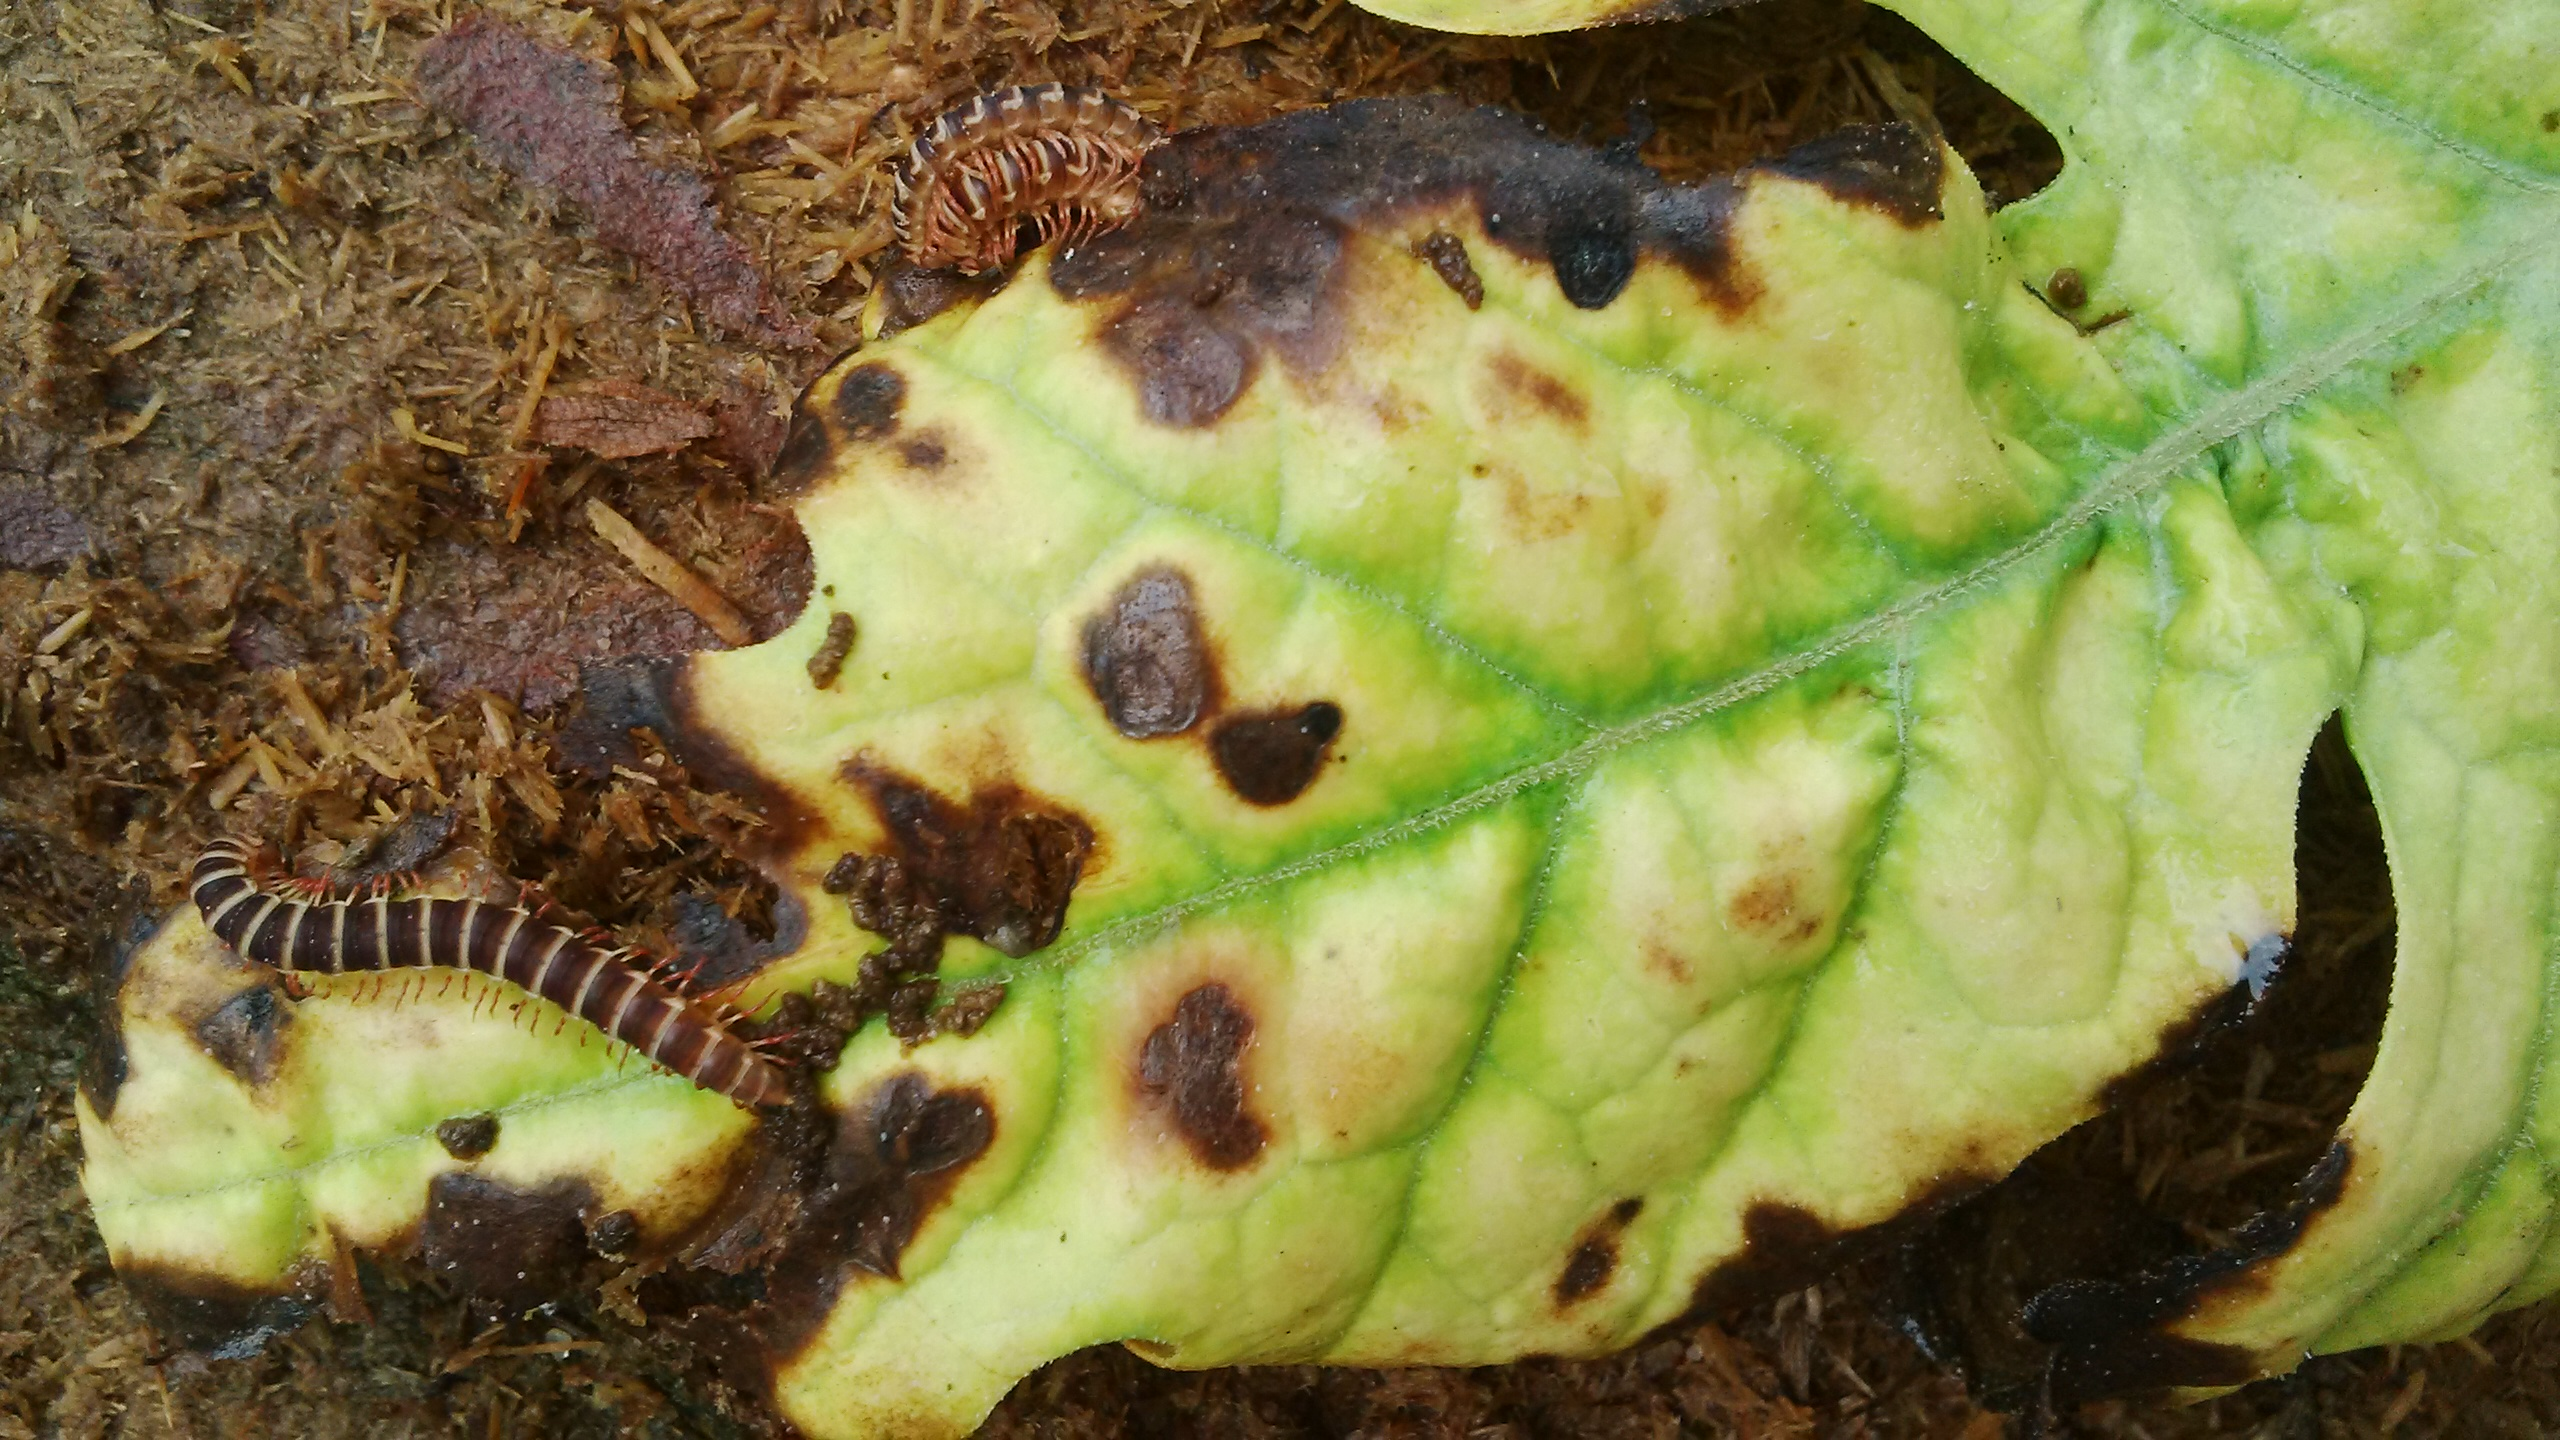 These red and black caterpillar looking living things are all over the leaves with the infection, are they infecting the leaves?